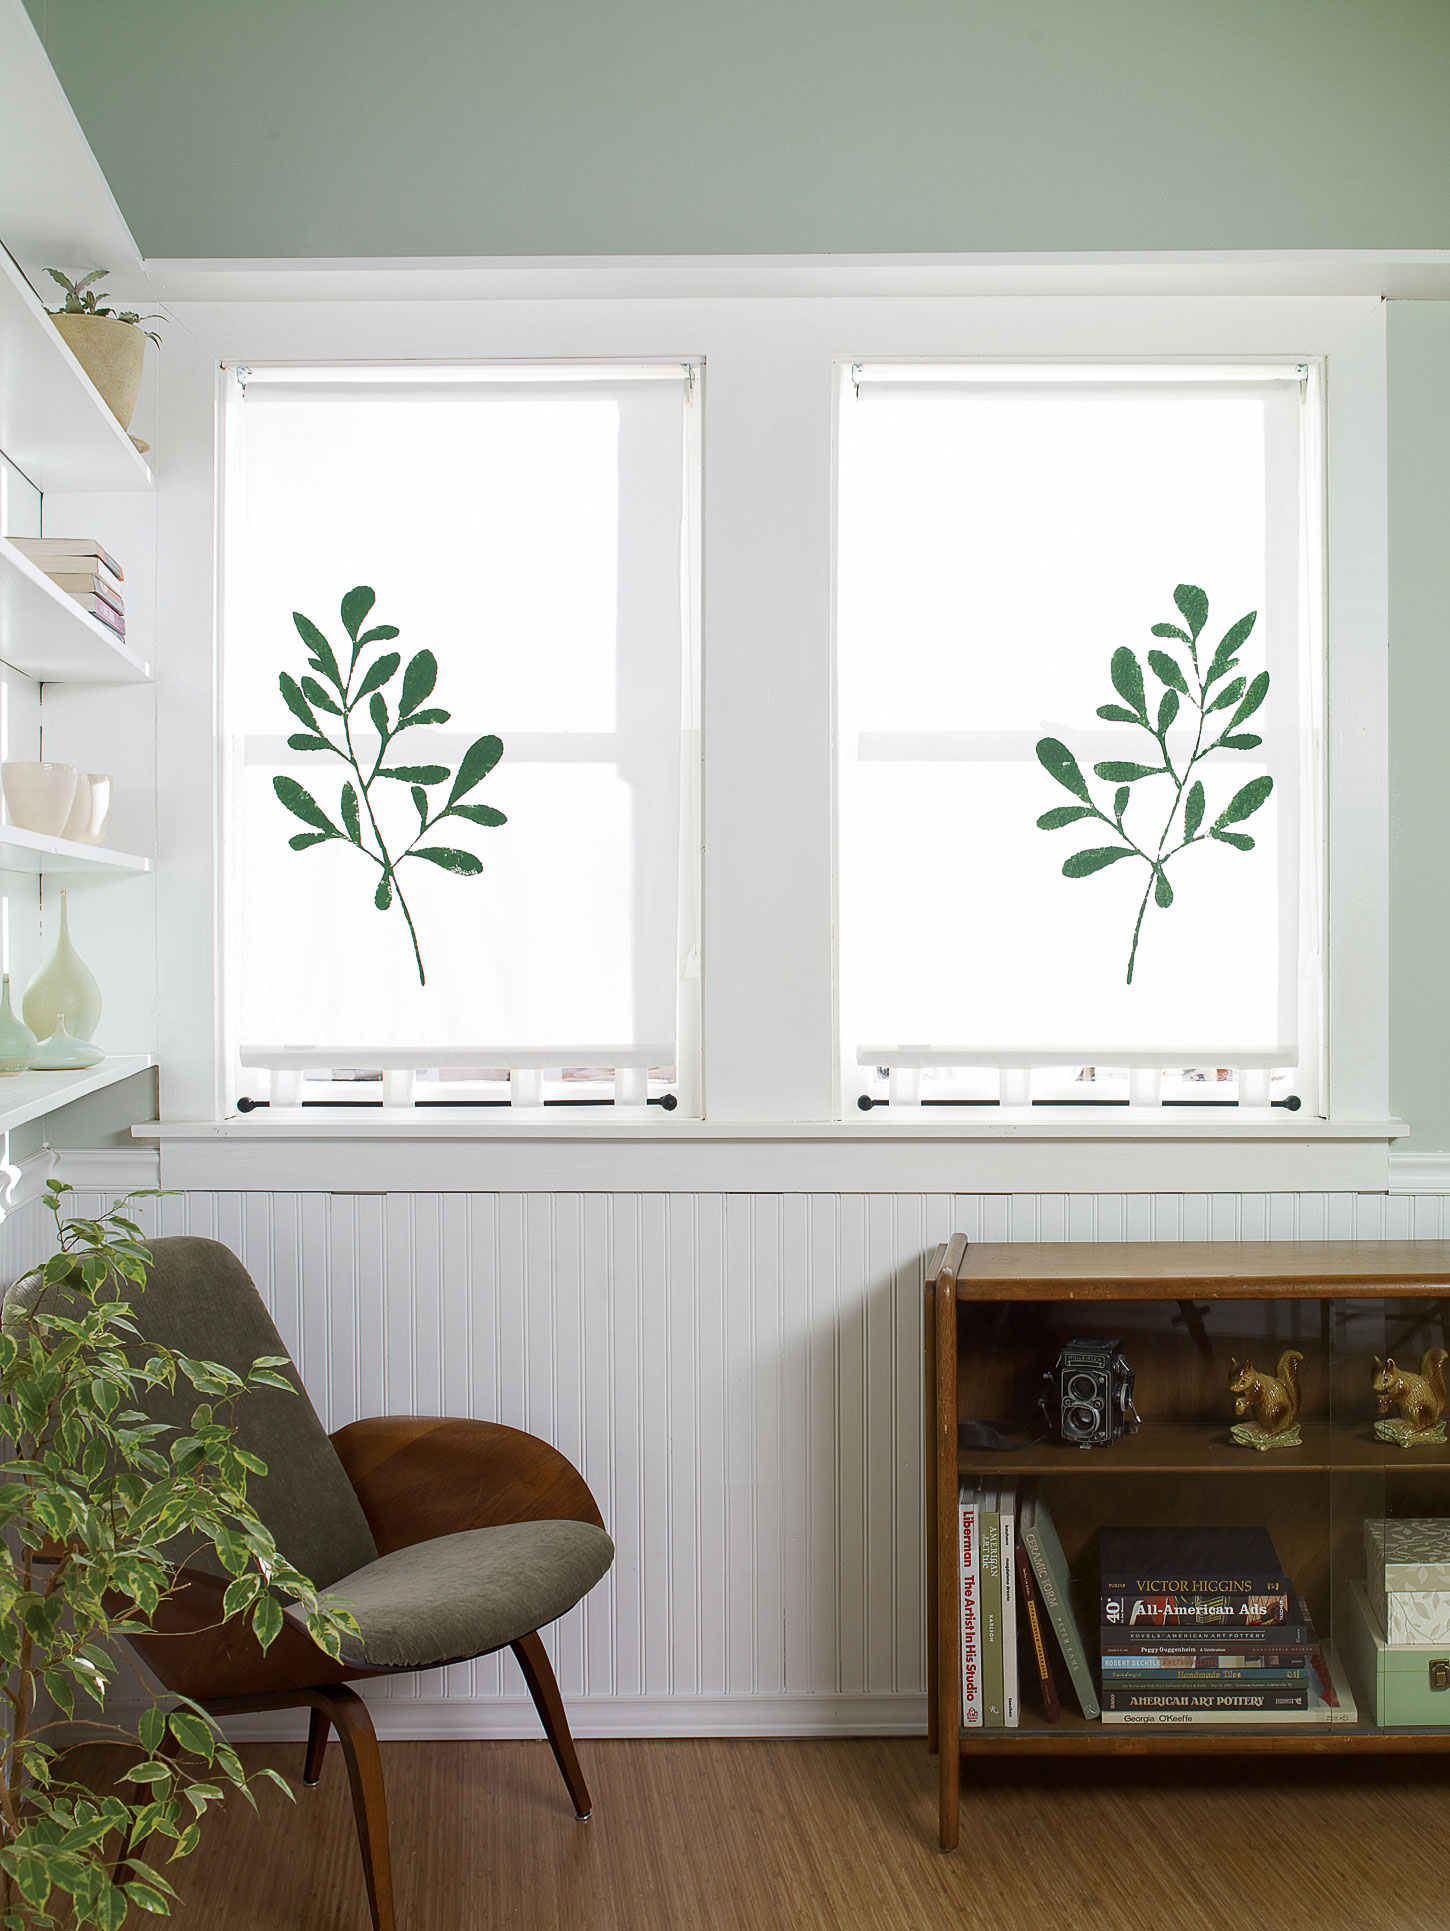 Stencil-Art Roller Shade for Your Bathroom Window